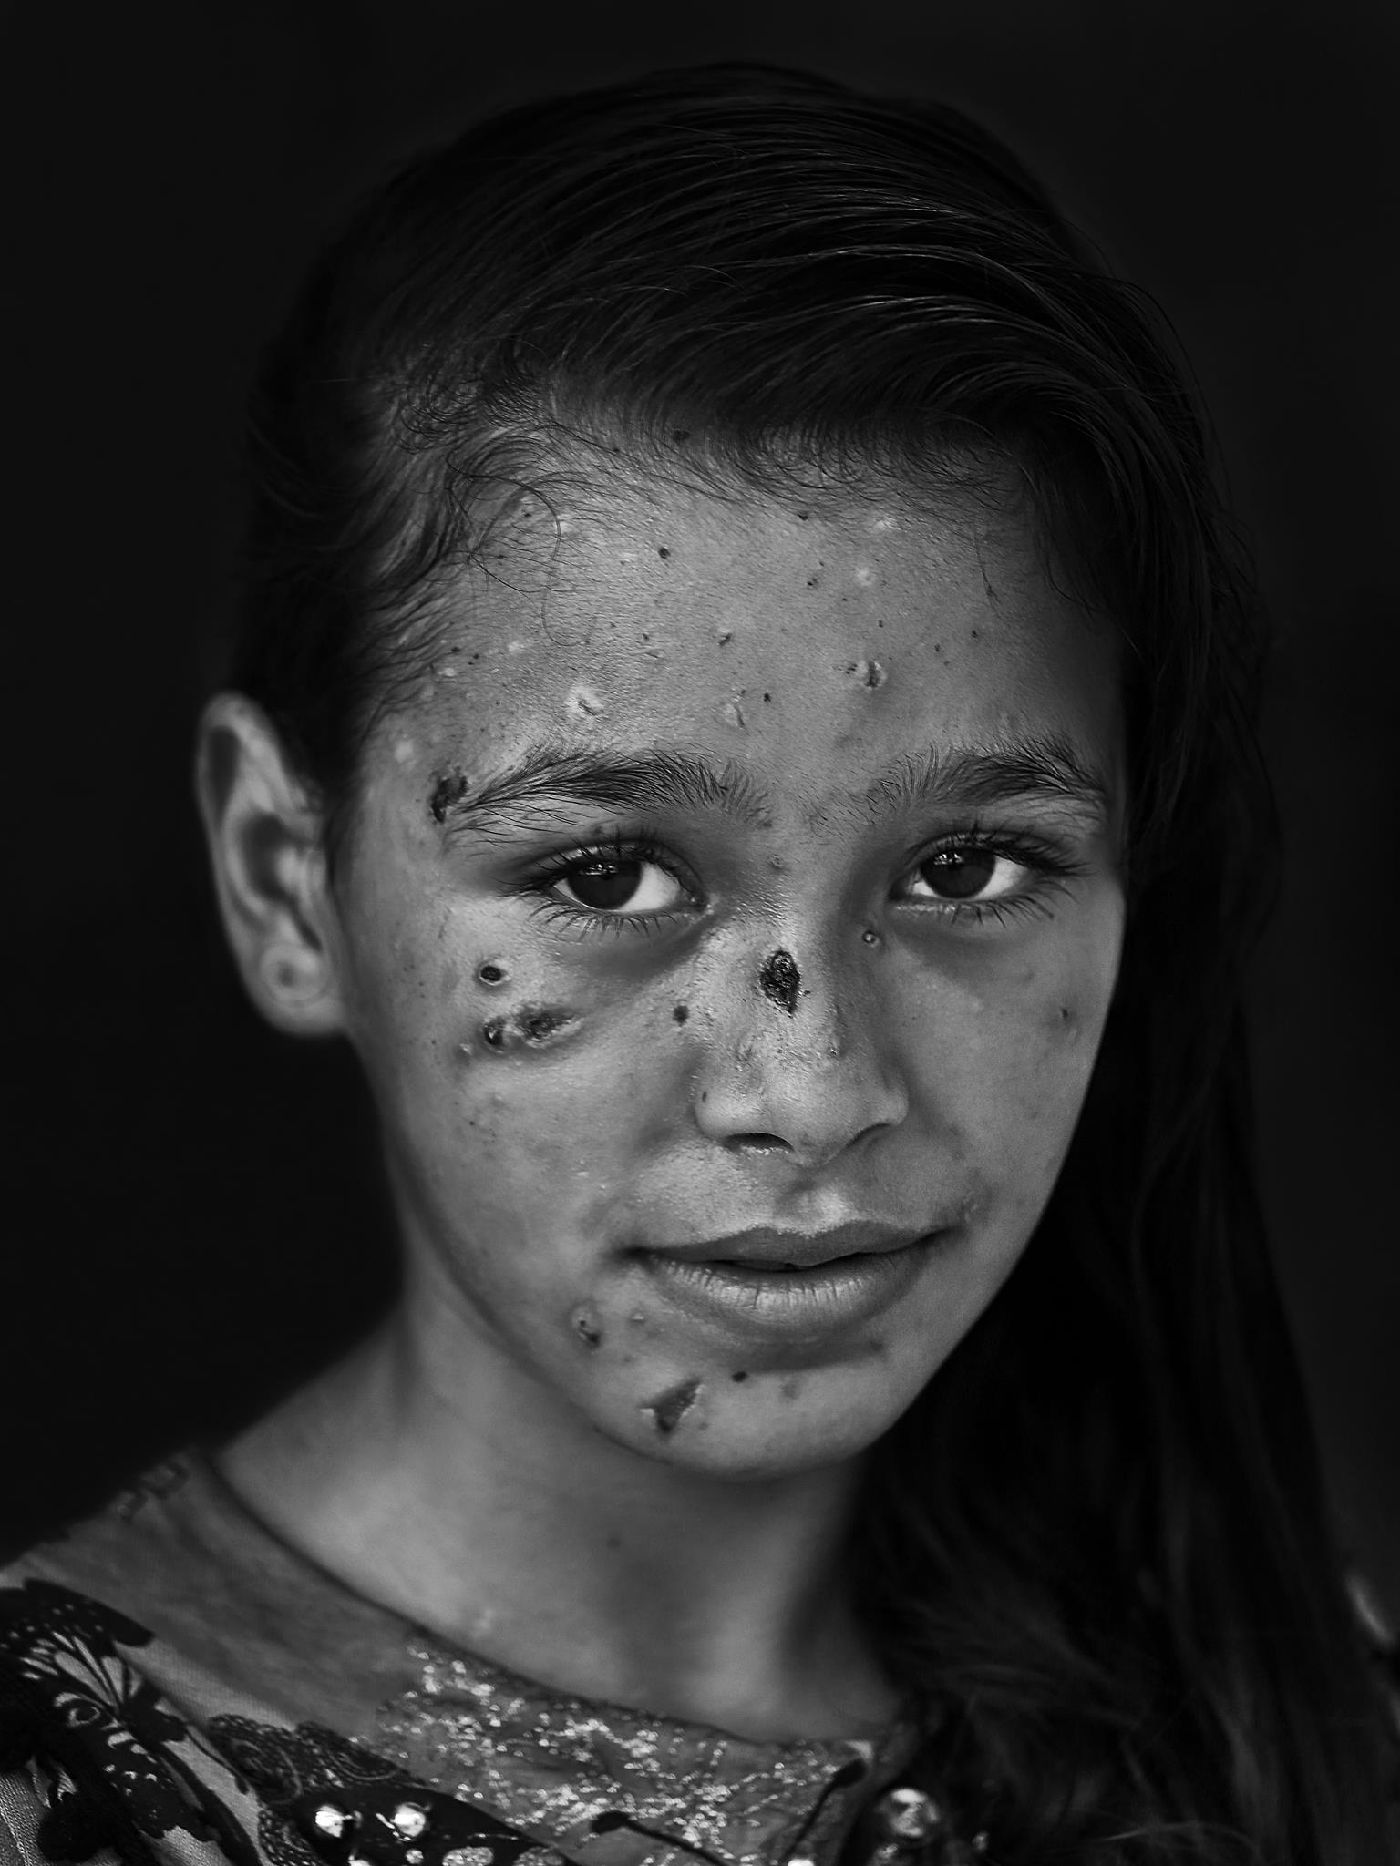 Mohammad's award-winning photograph: Dalia Kahlifa, 9-year-old Palestinian victim of Israel's 2014 incursion on Gaza